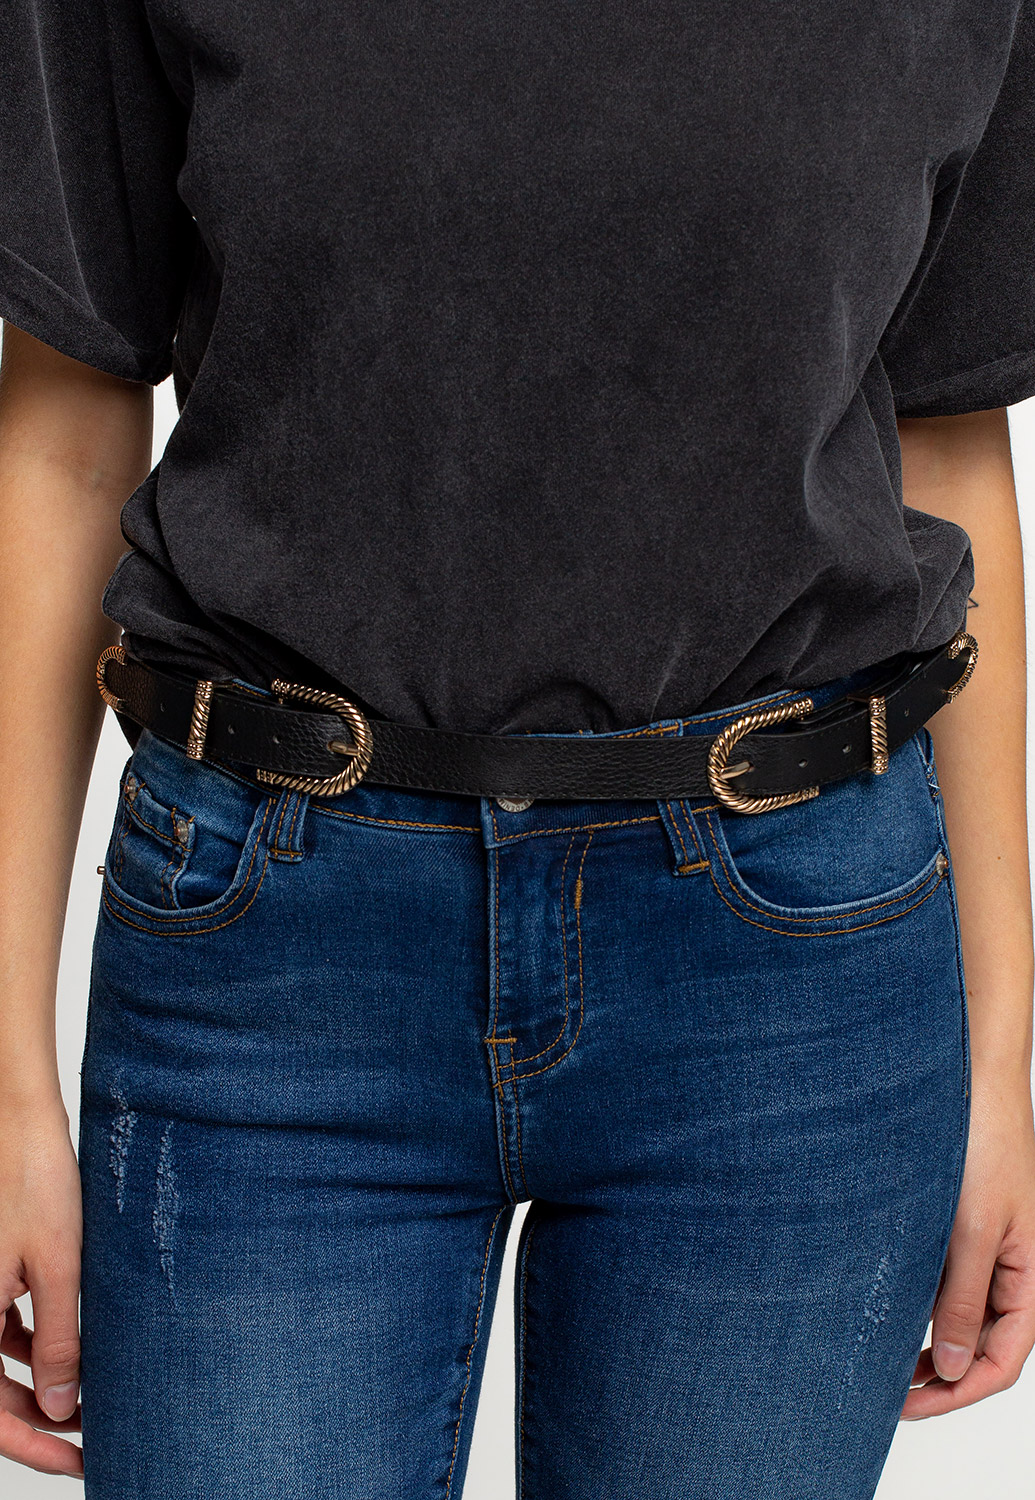 Faux Leather Double Buckle Belts